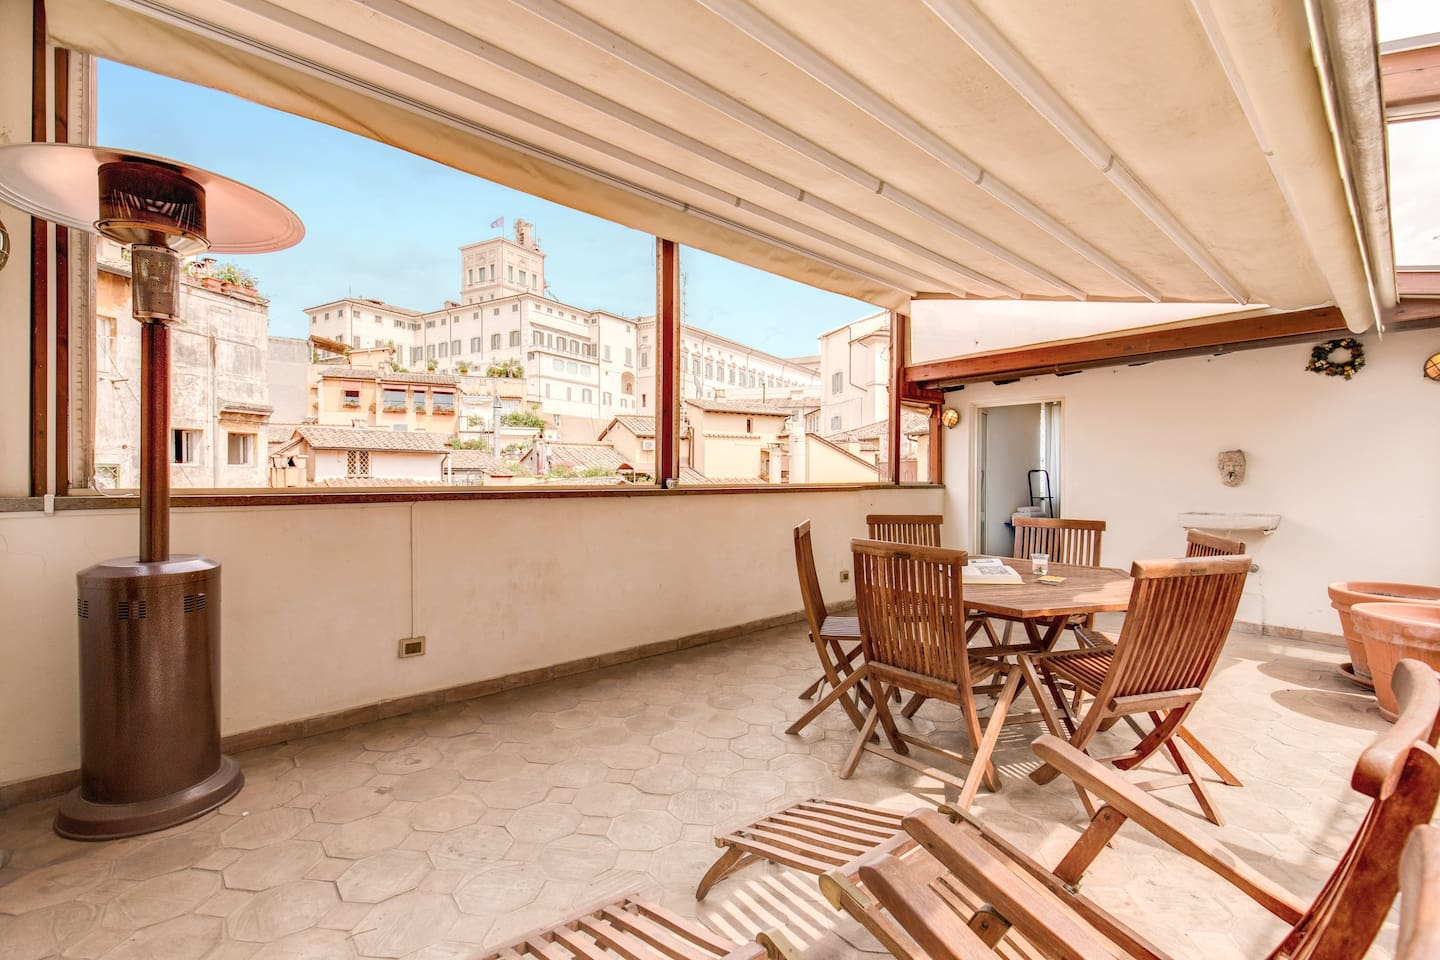 Lovely terrace with a roof that opens electronically and offers to our guest stunning view overlooking the Quirinale Palace ( President Palace)